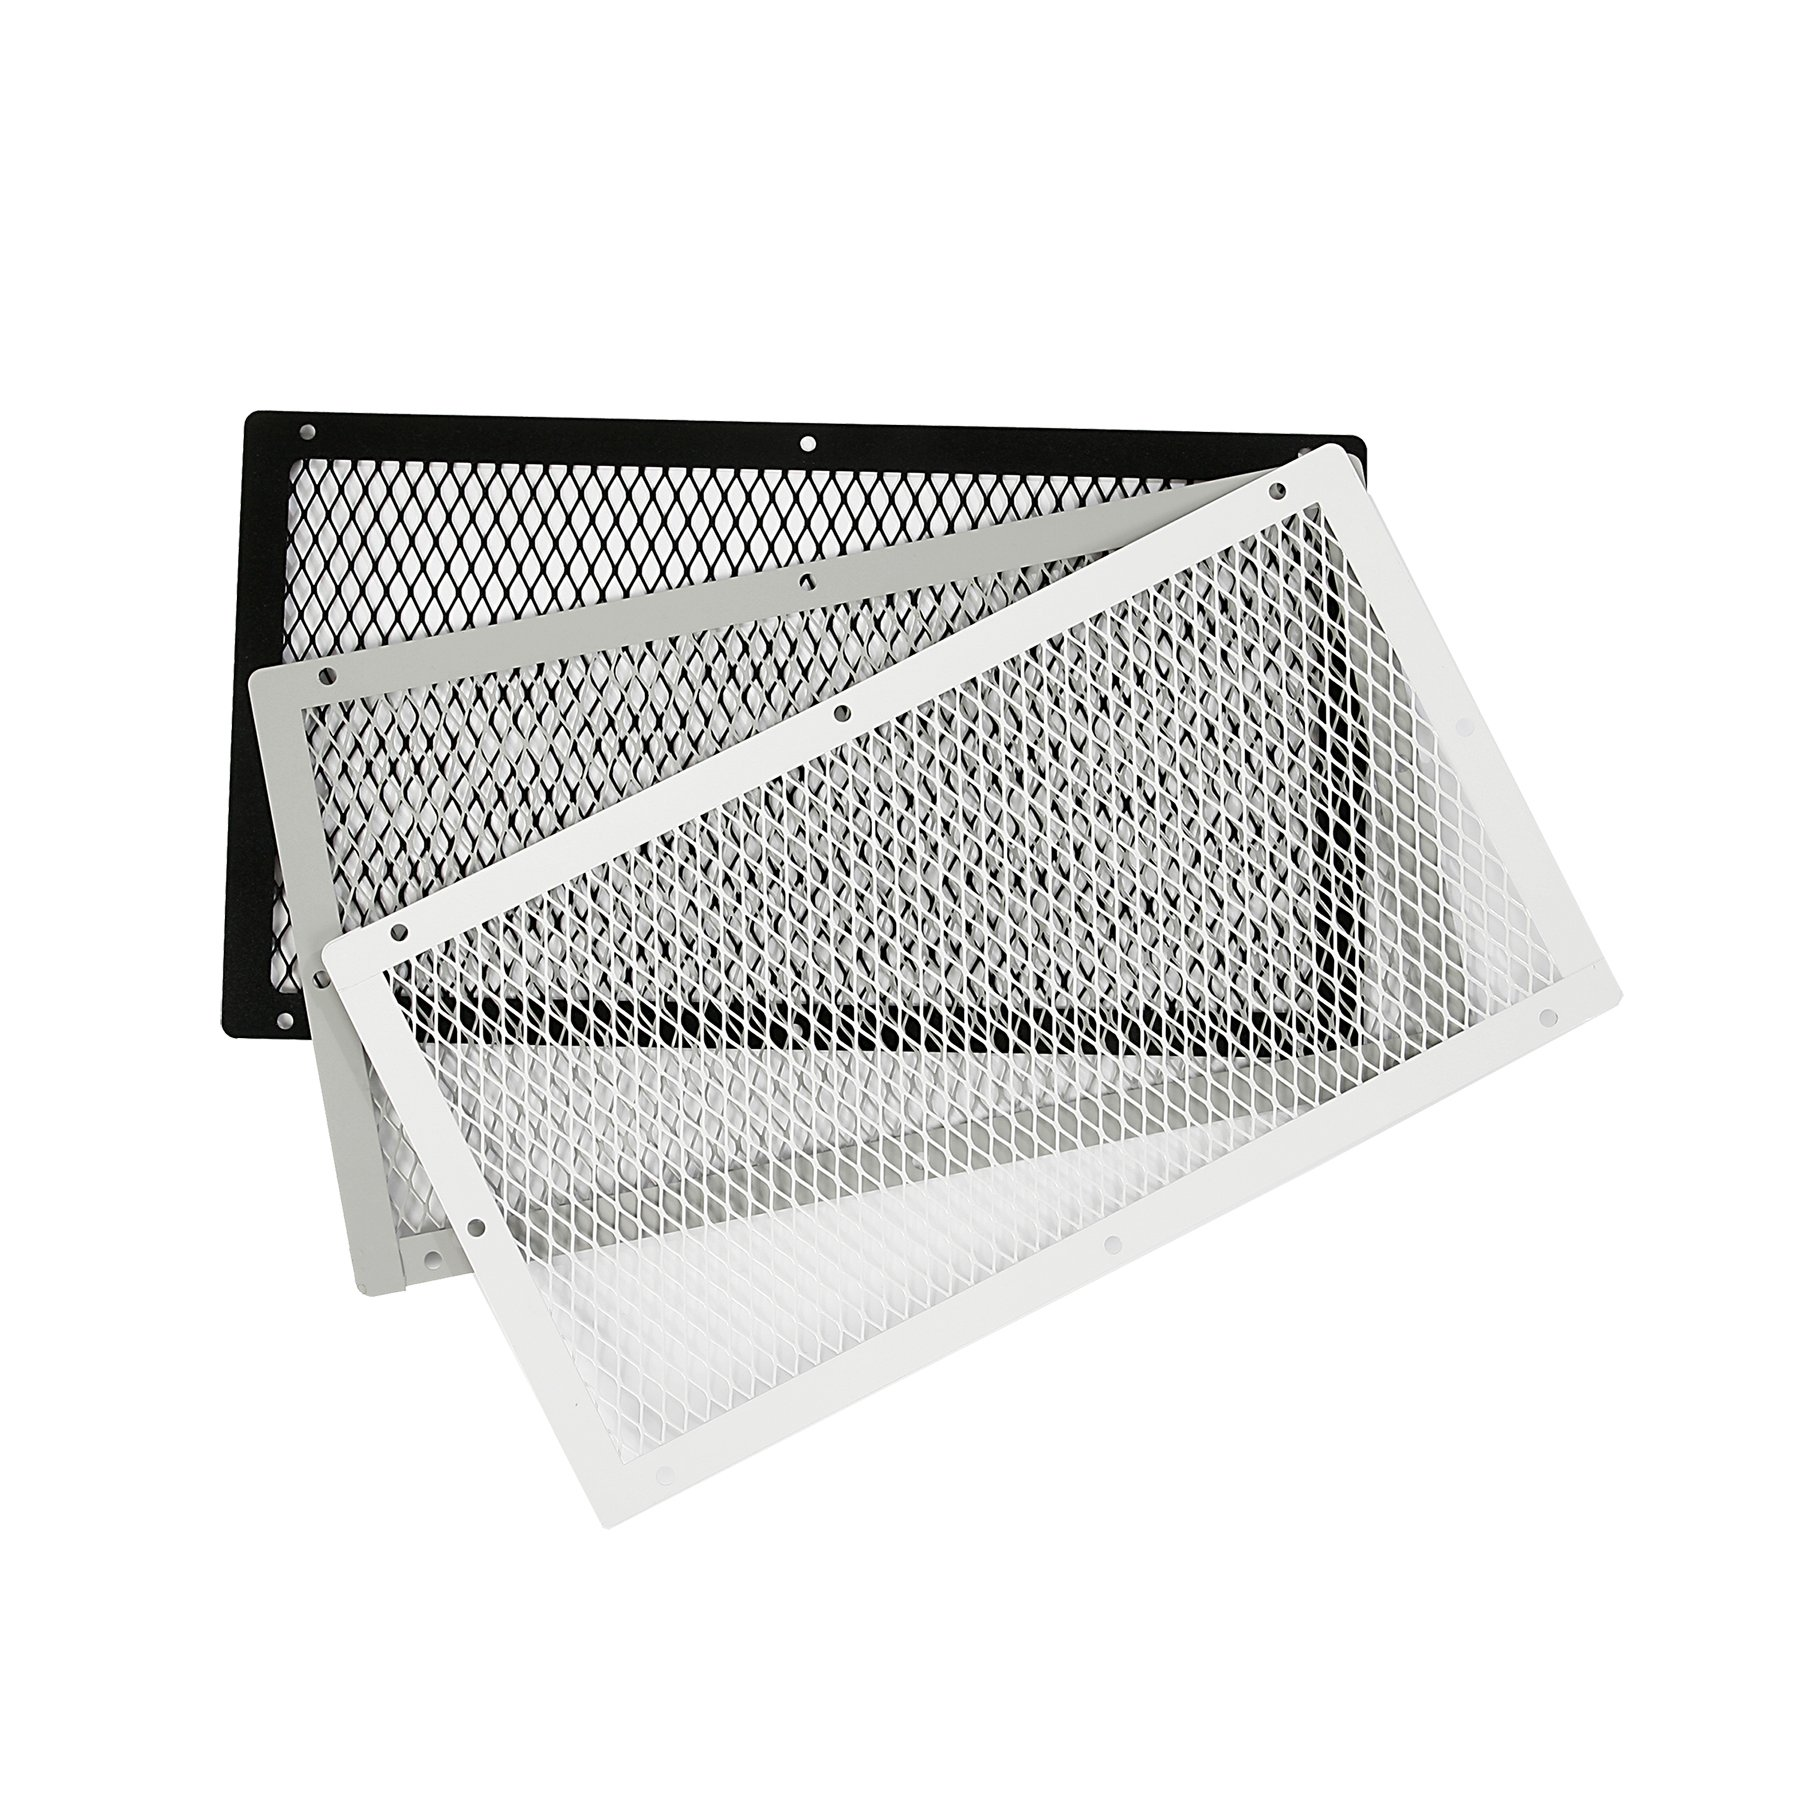 HY-C VG1018G-1B Galvanized Steel Foundation VentGuard with Black Wildlife Exclusion Screen, 10'' x 0.25'' x 18''